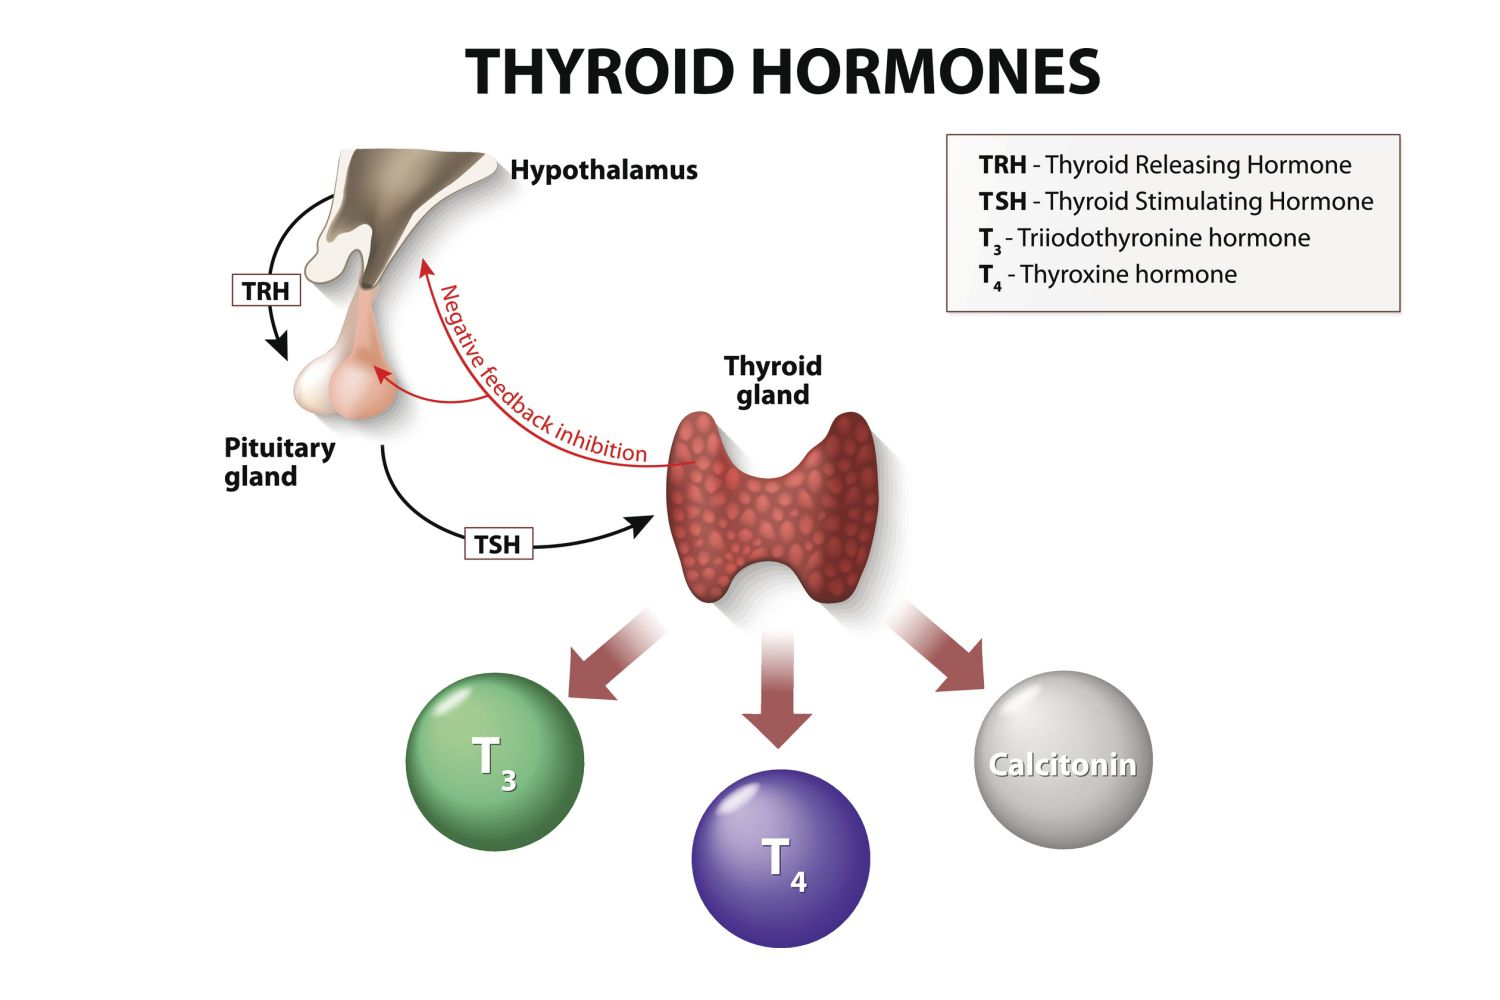 hight resolution of thyroid hormone production and regulation